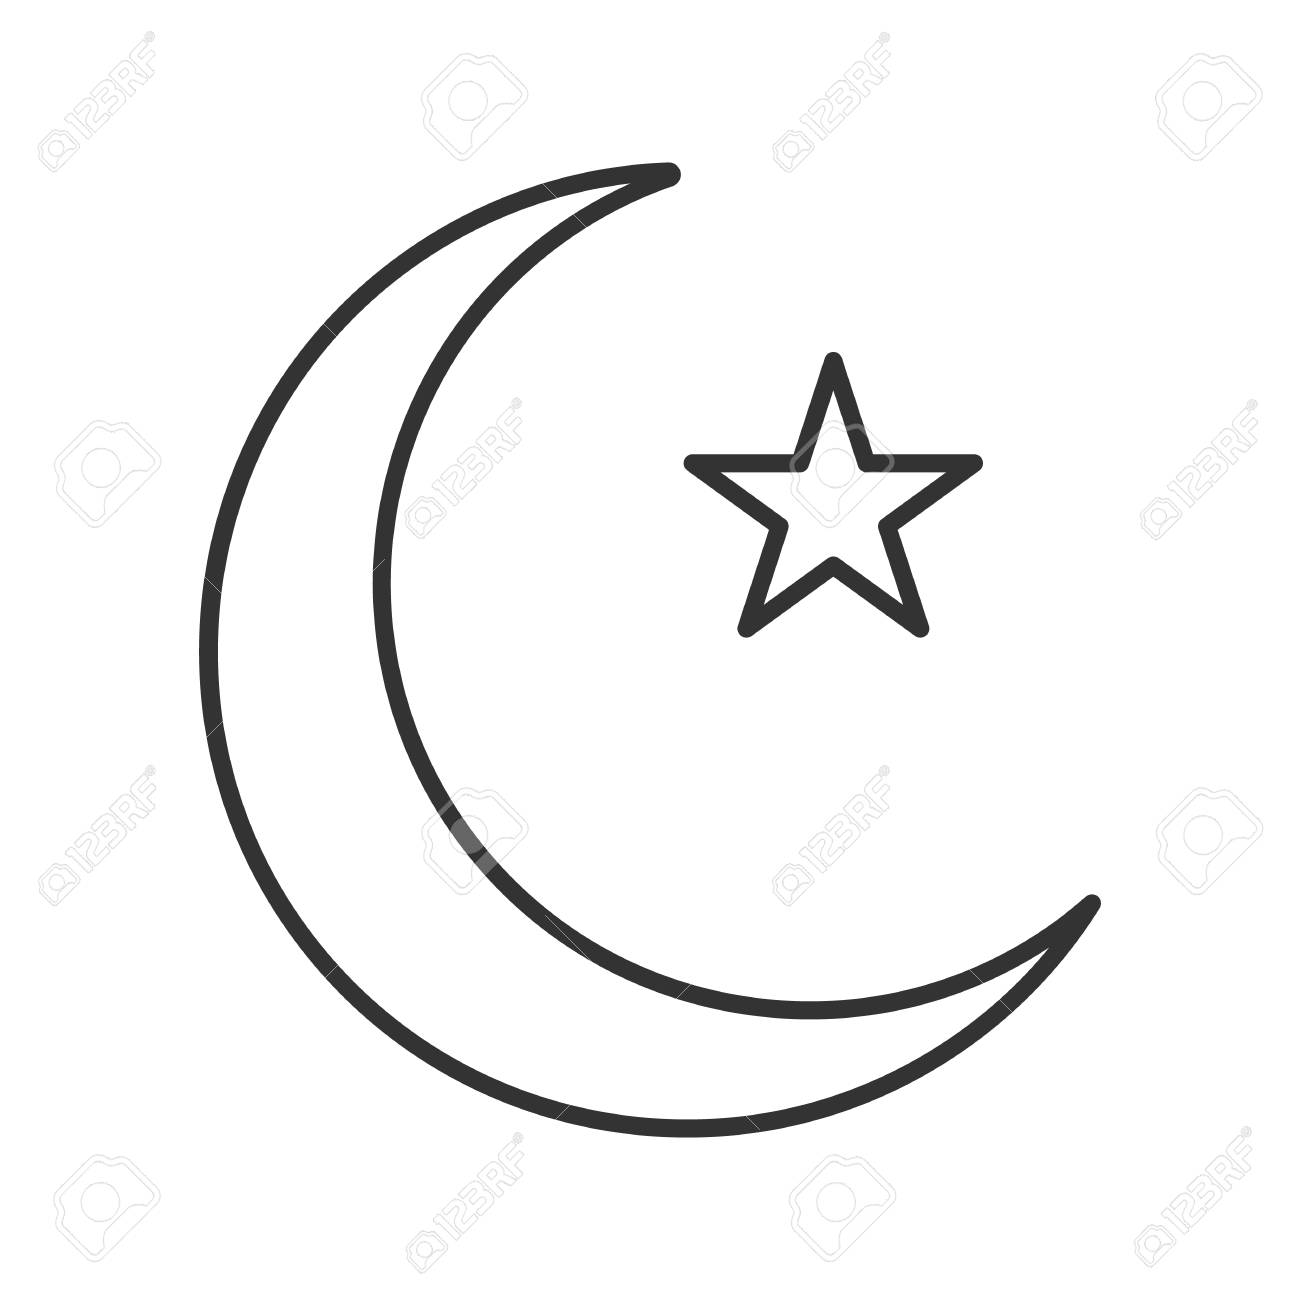 star and crescent moon